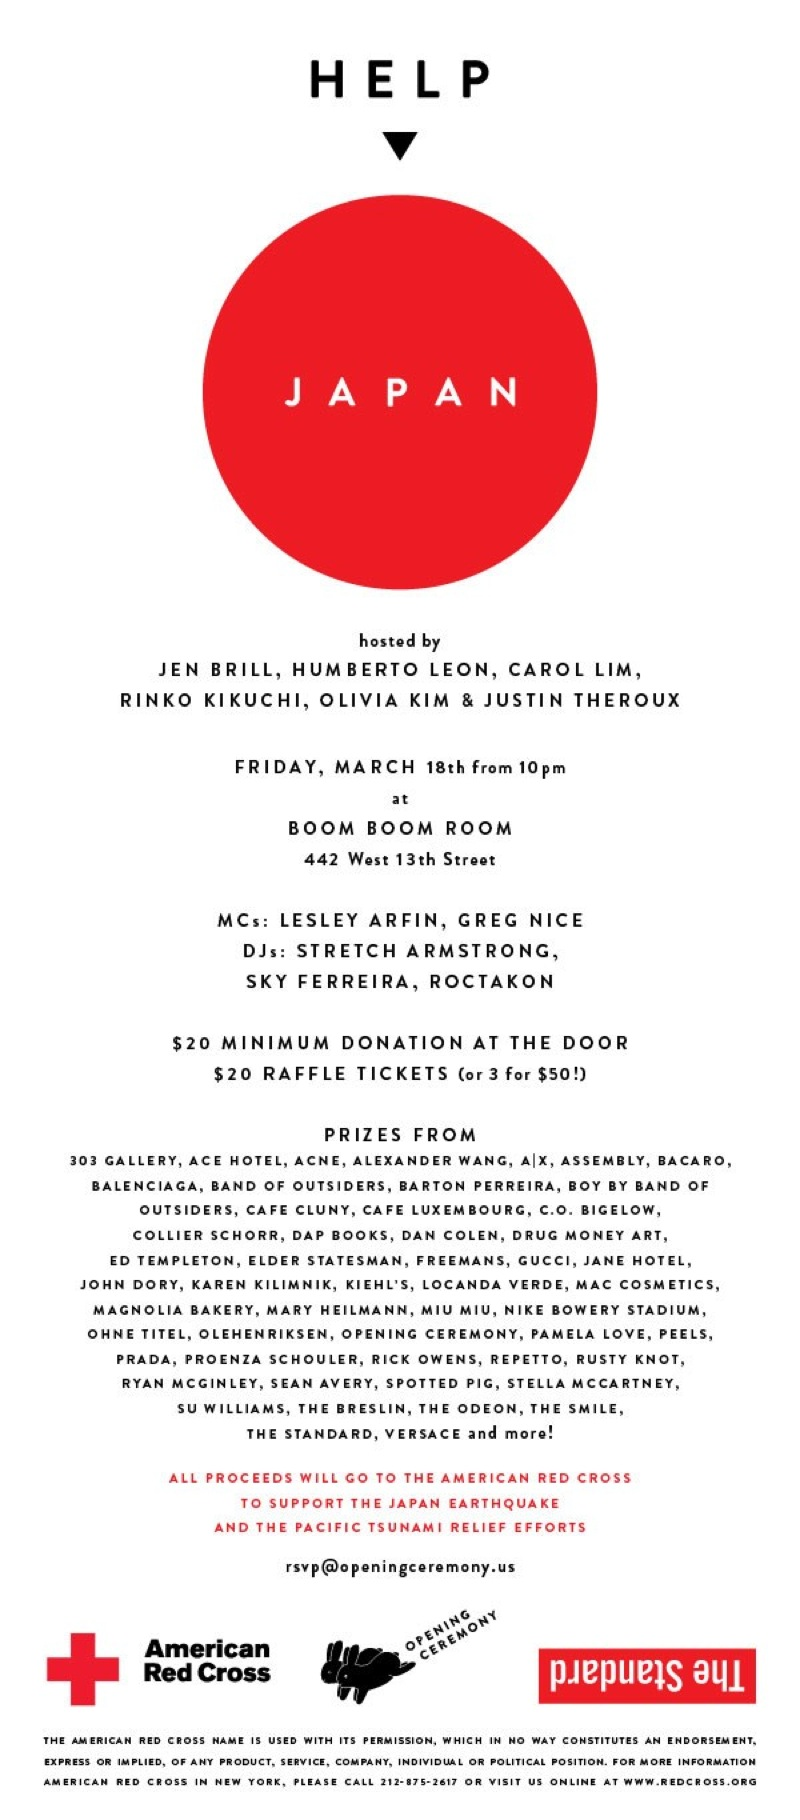 SURF COLLECTIVE NYC - FUNDRAISER INVITE FOR JAPAN - OPENING CEREMONY / RED CROSS / THE STANDARD